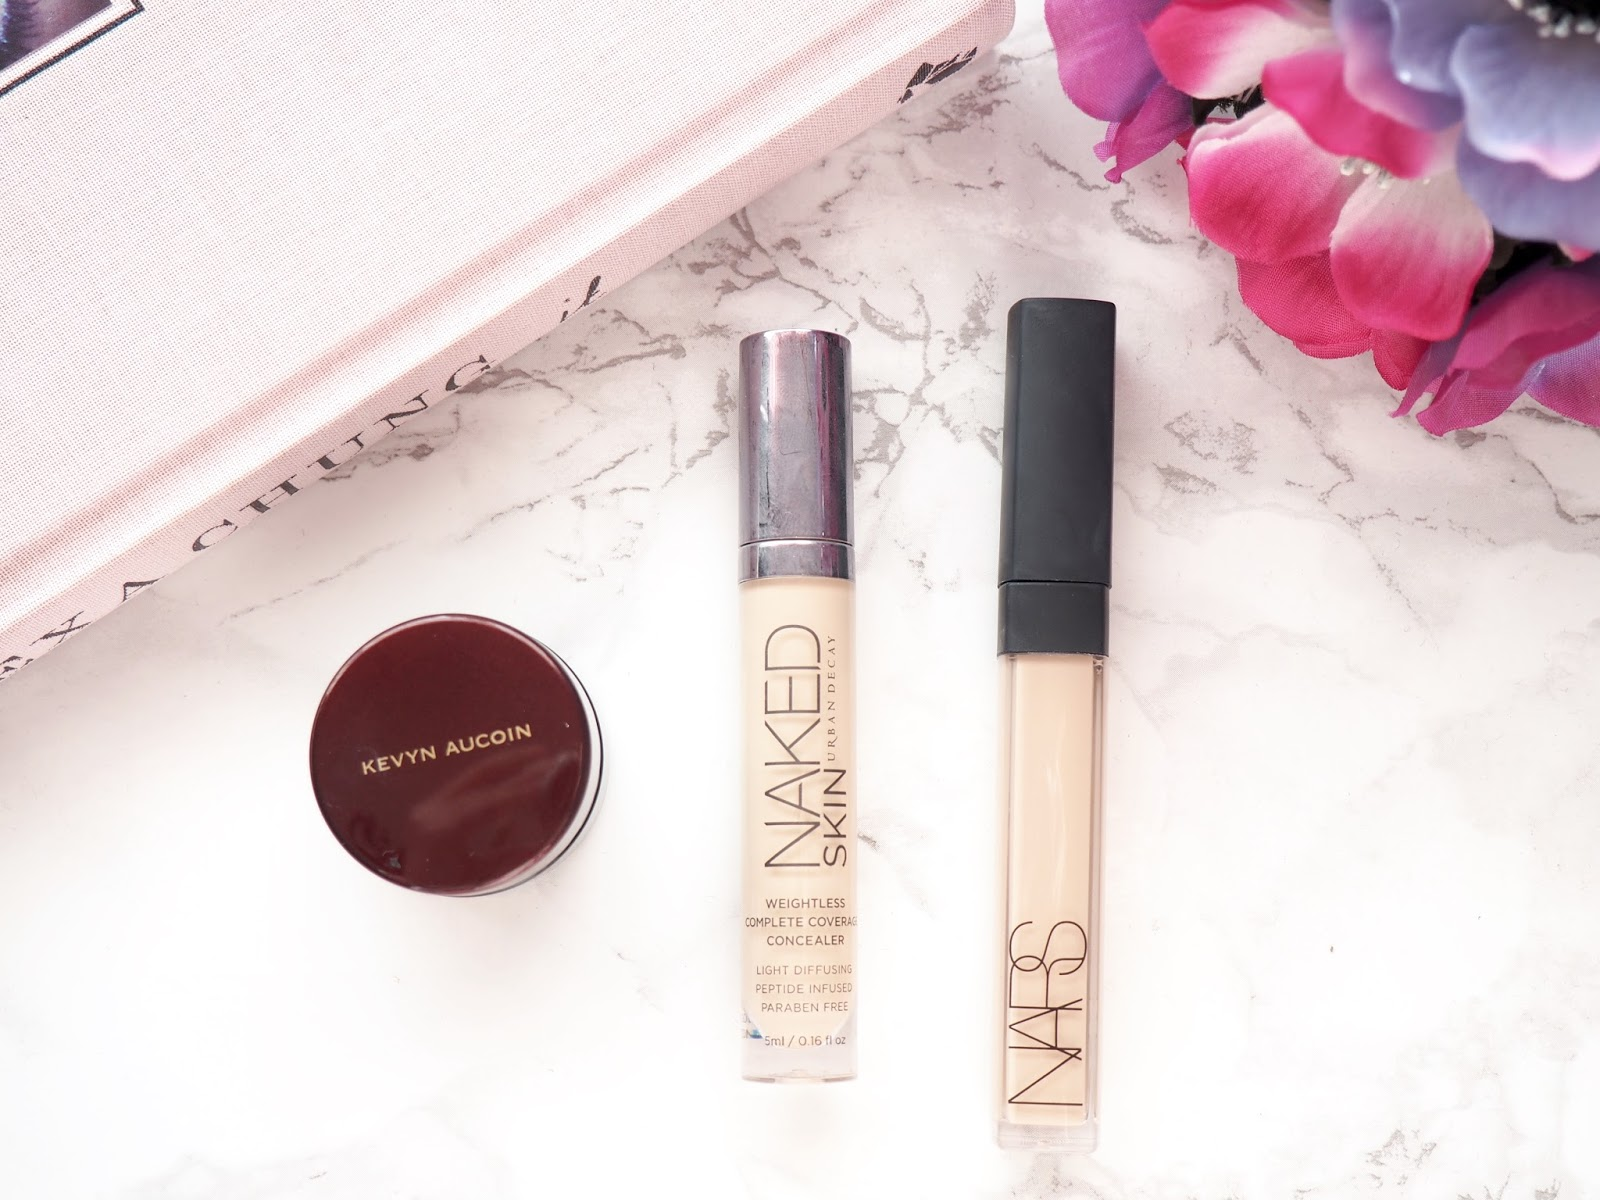 My Top 3 Must Have Concealers